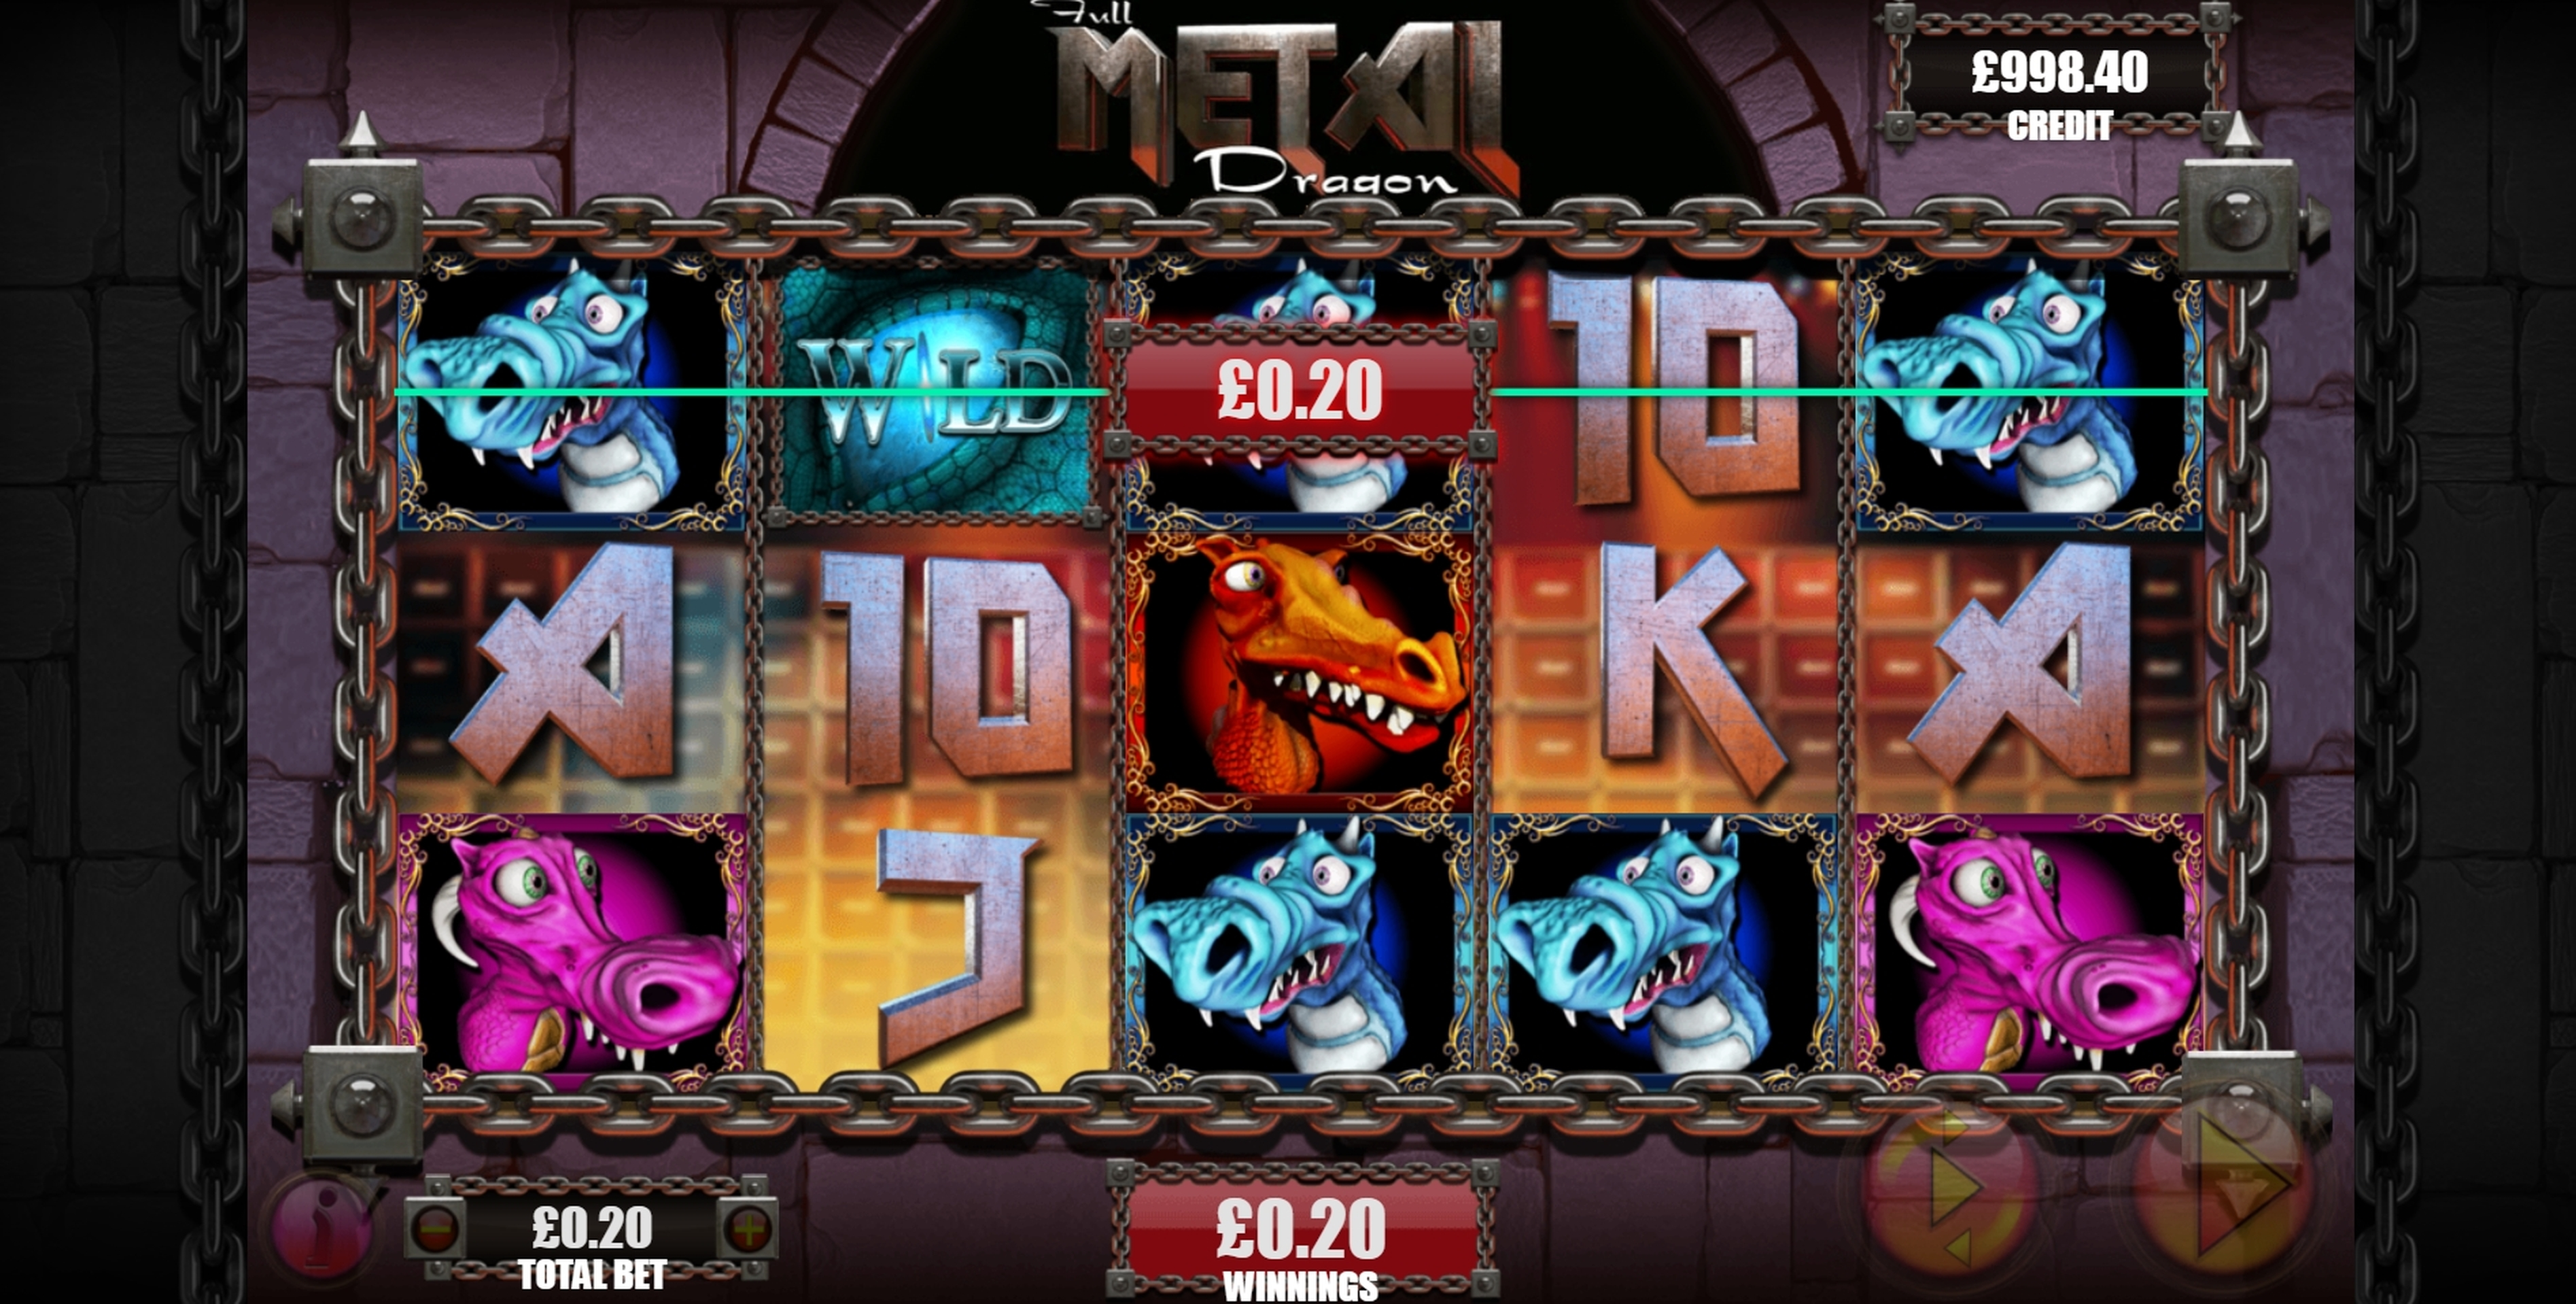 Win Money in Full Metal Dragon Free Slot Game by Games Warehouse